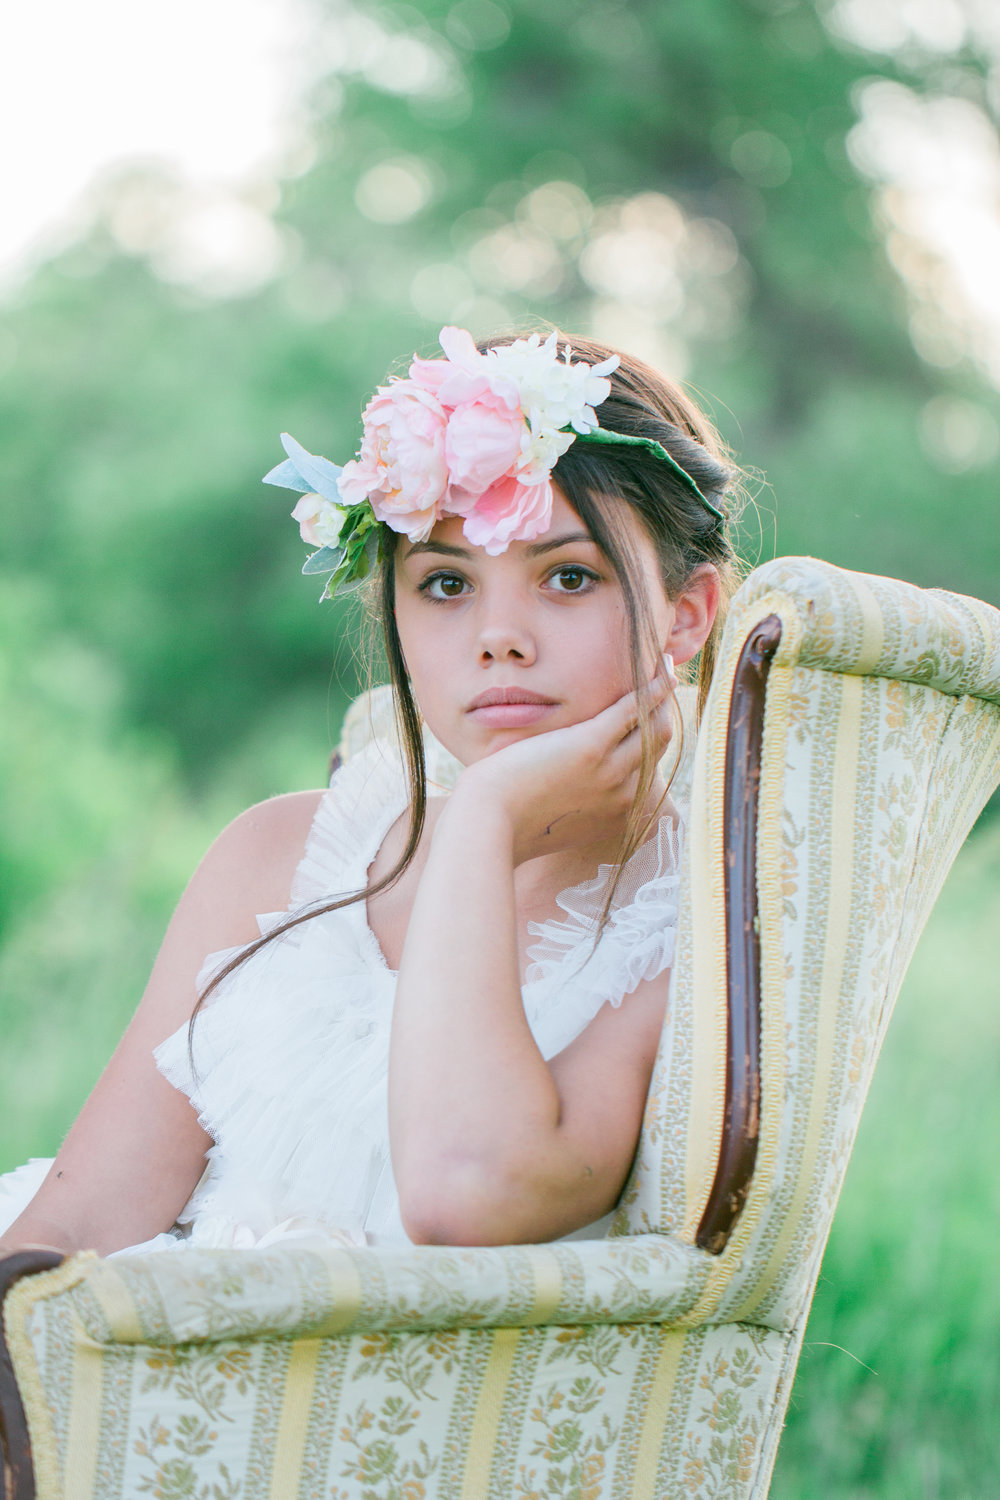 teen girl wearing a flower crown sitting in a vintage chair with trees behind her.